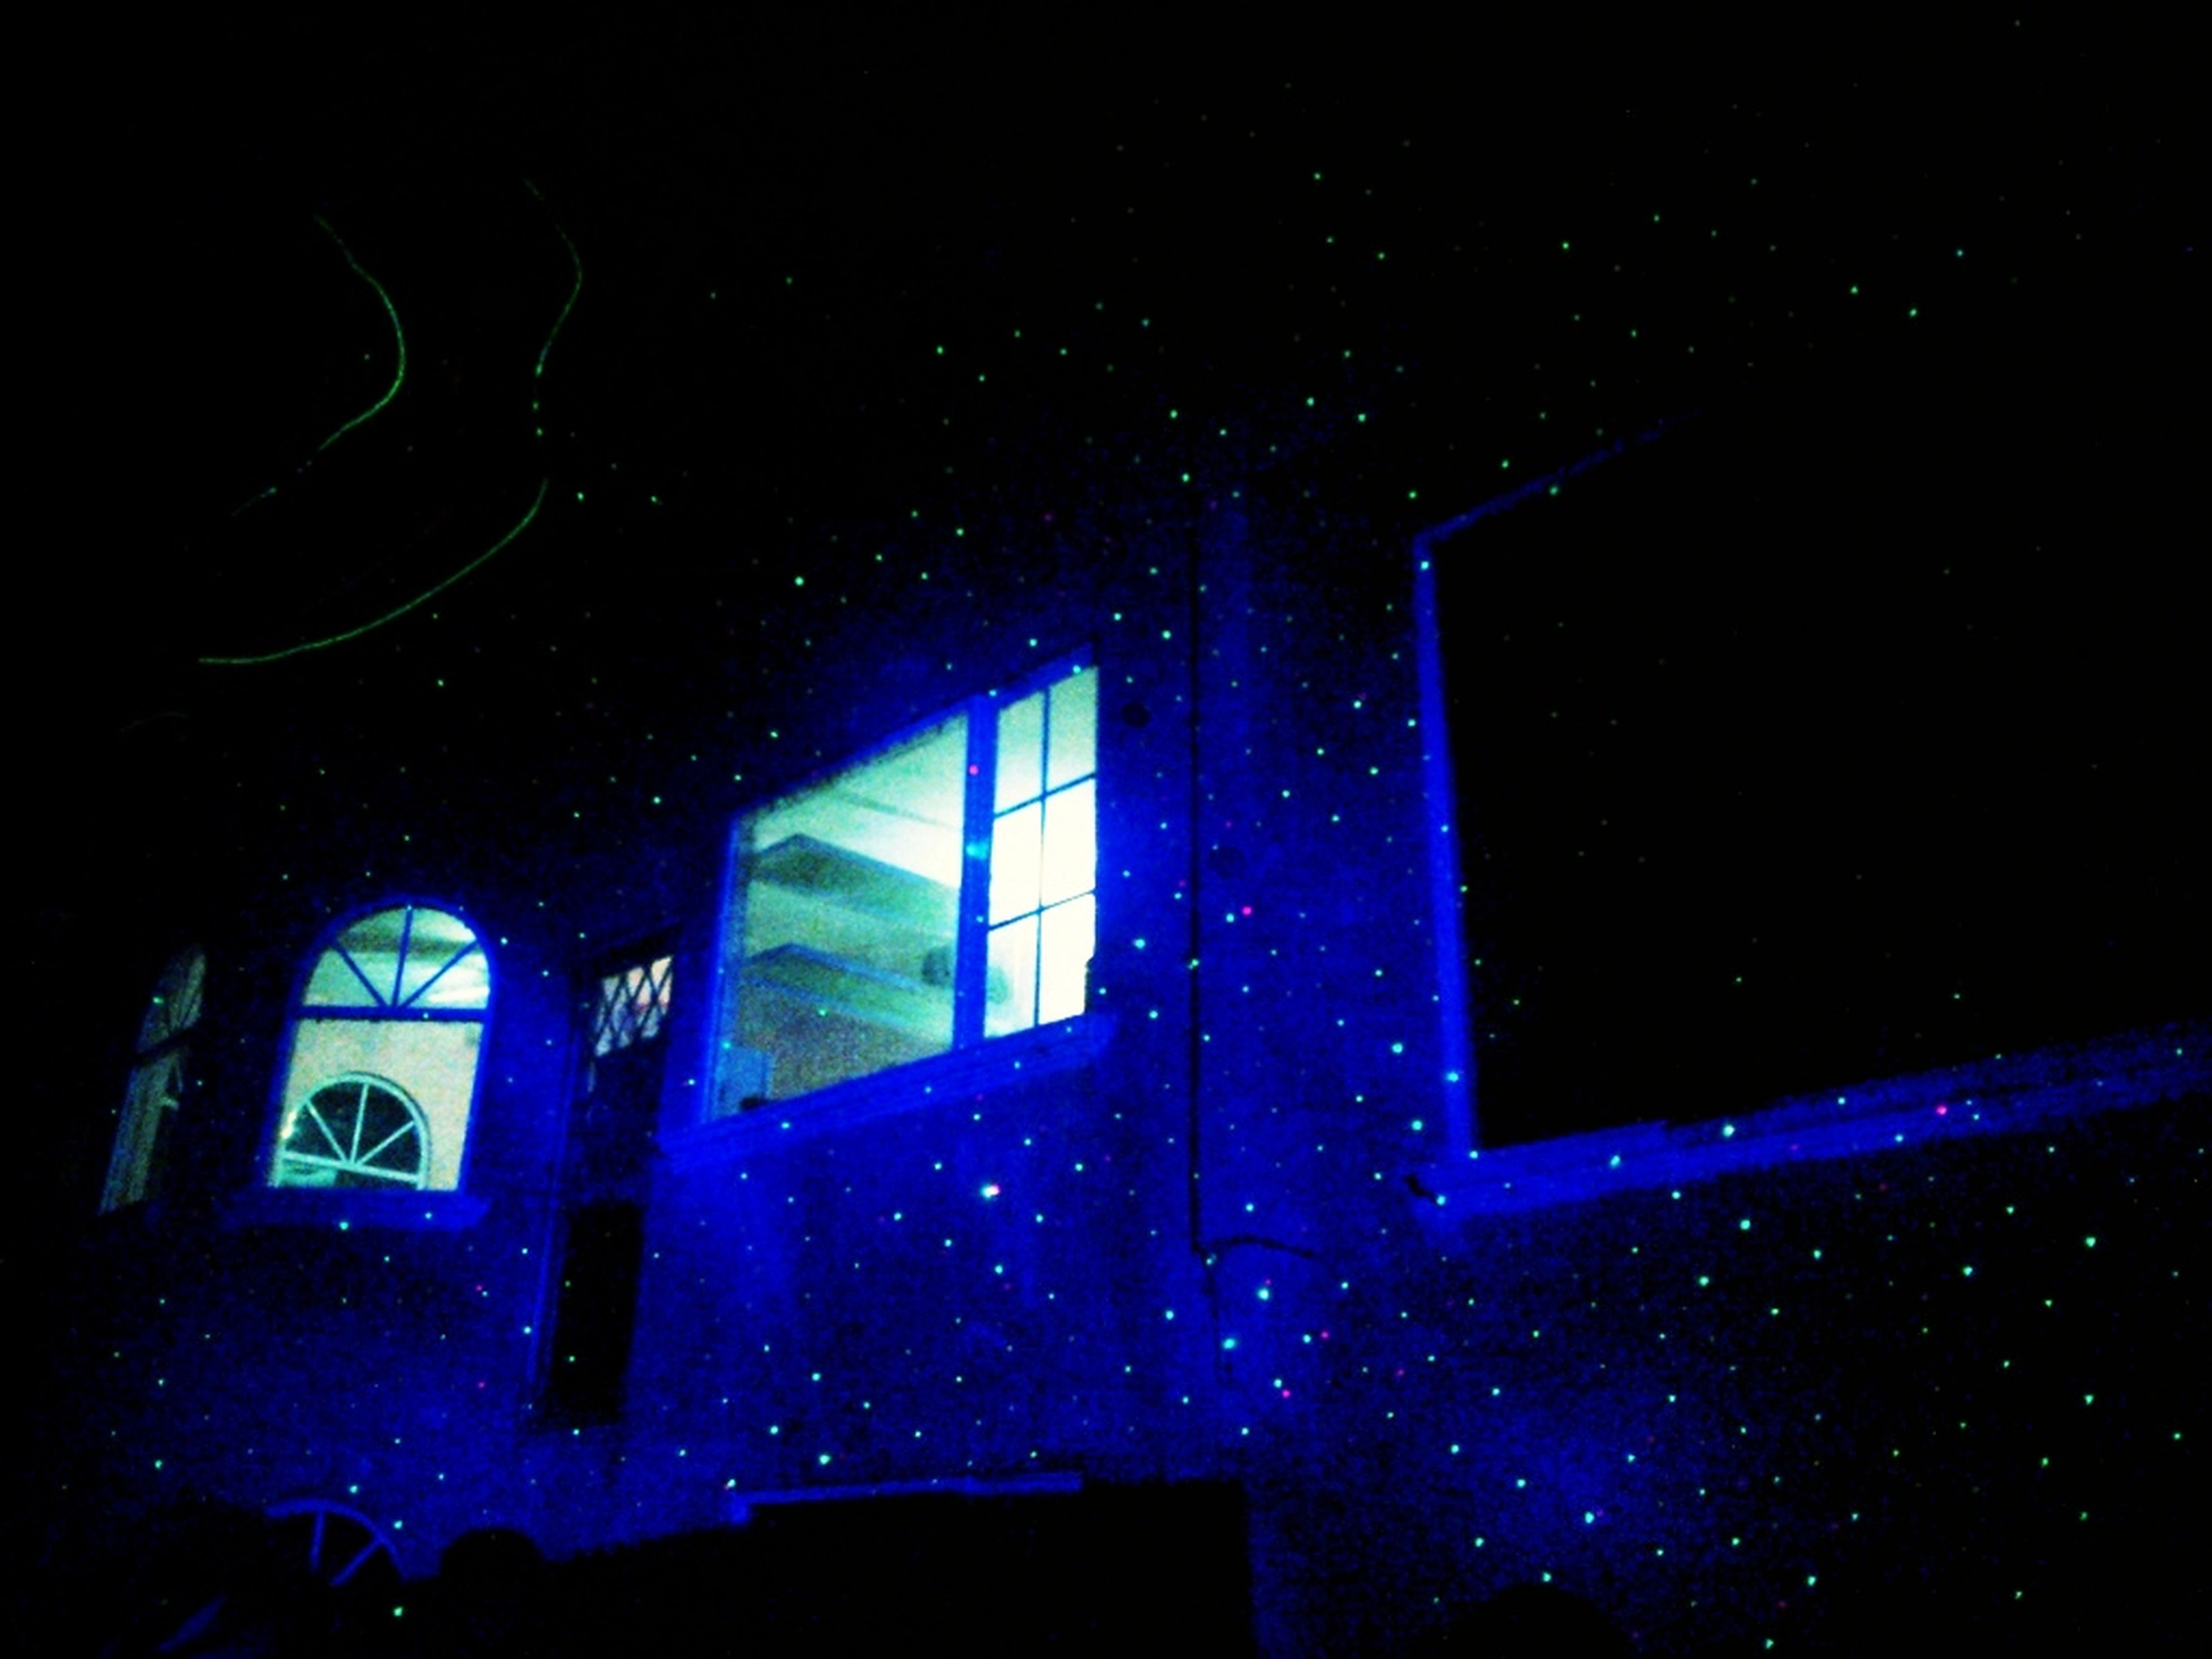 night, window, indoors, dark, illuminated, glass - material, low angle view, blue, transparent, no people, full frame, built structure, light - natural phenomenon, sky, backgrounds, close-up, star - space, glass, house, architecture